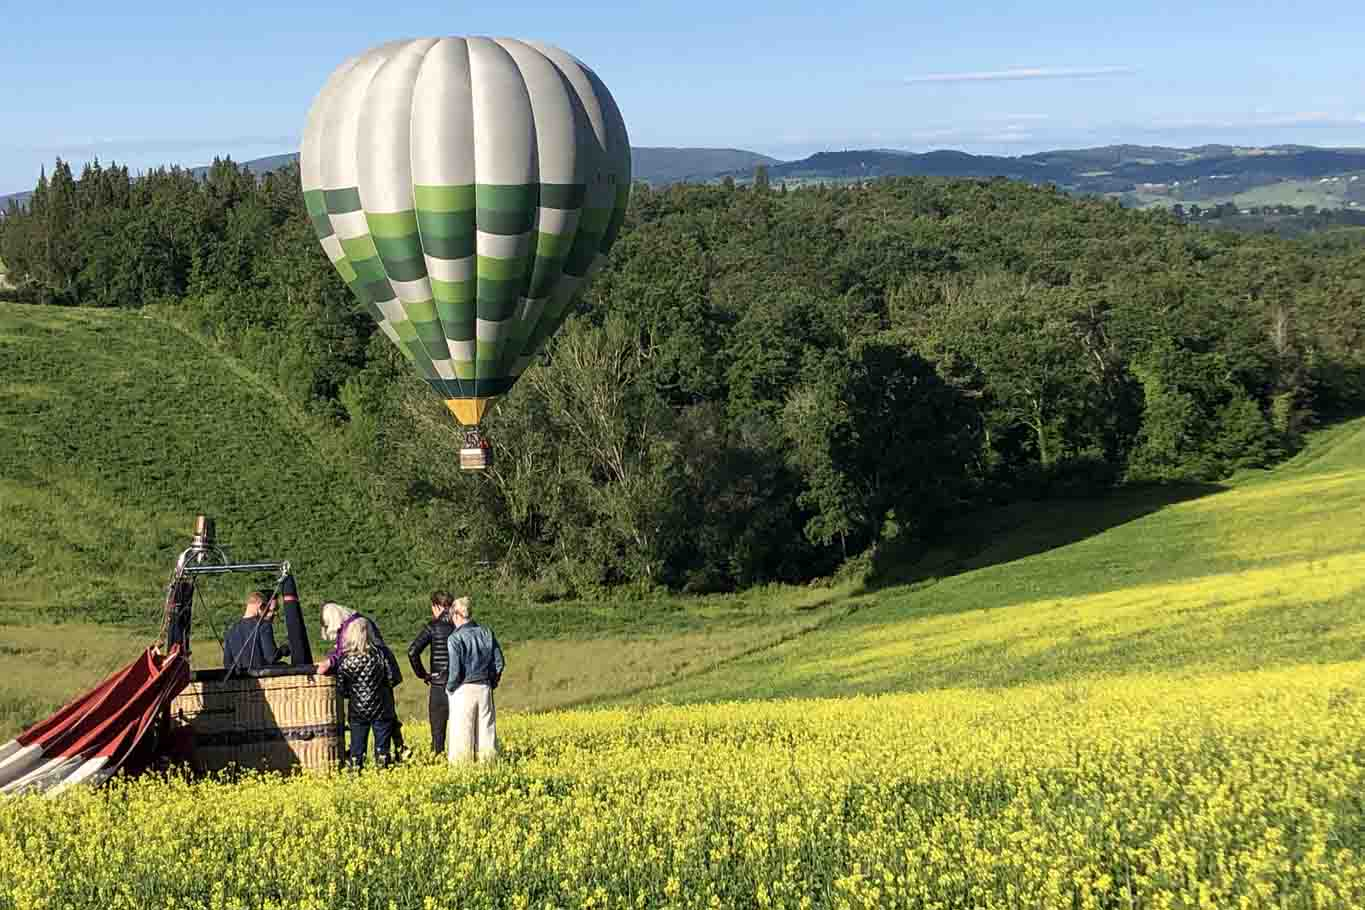 Green Balloon over the chianti